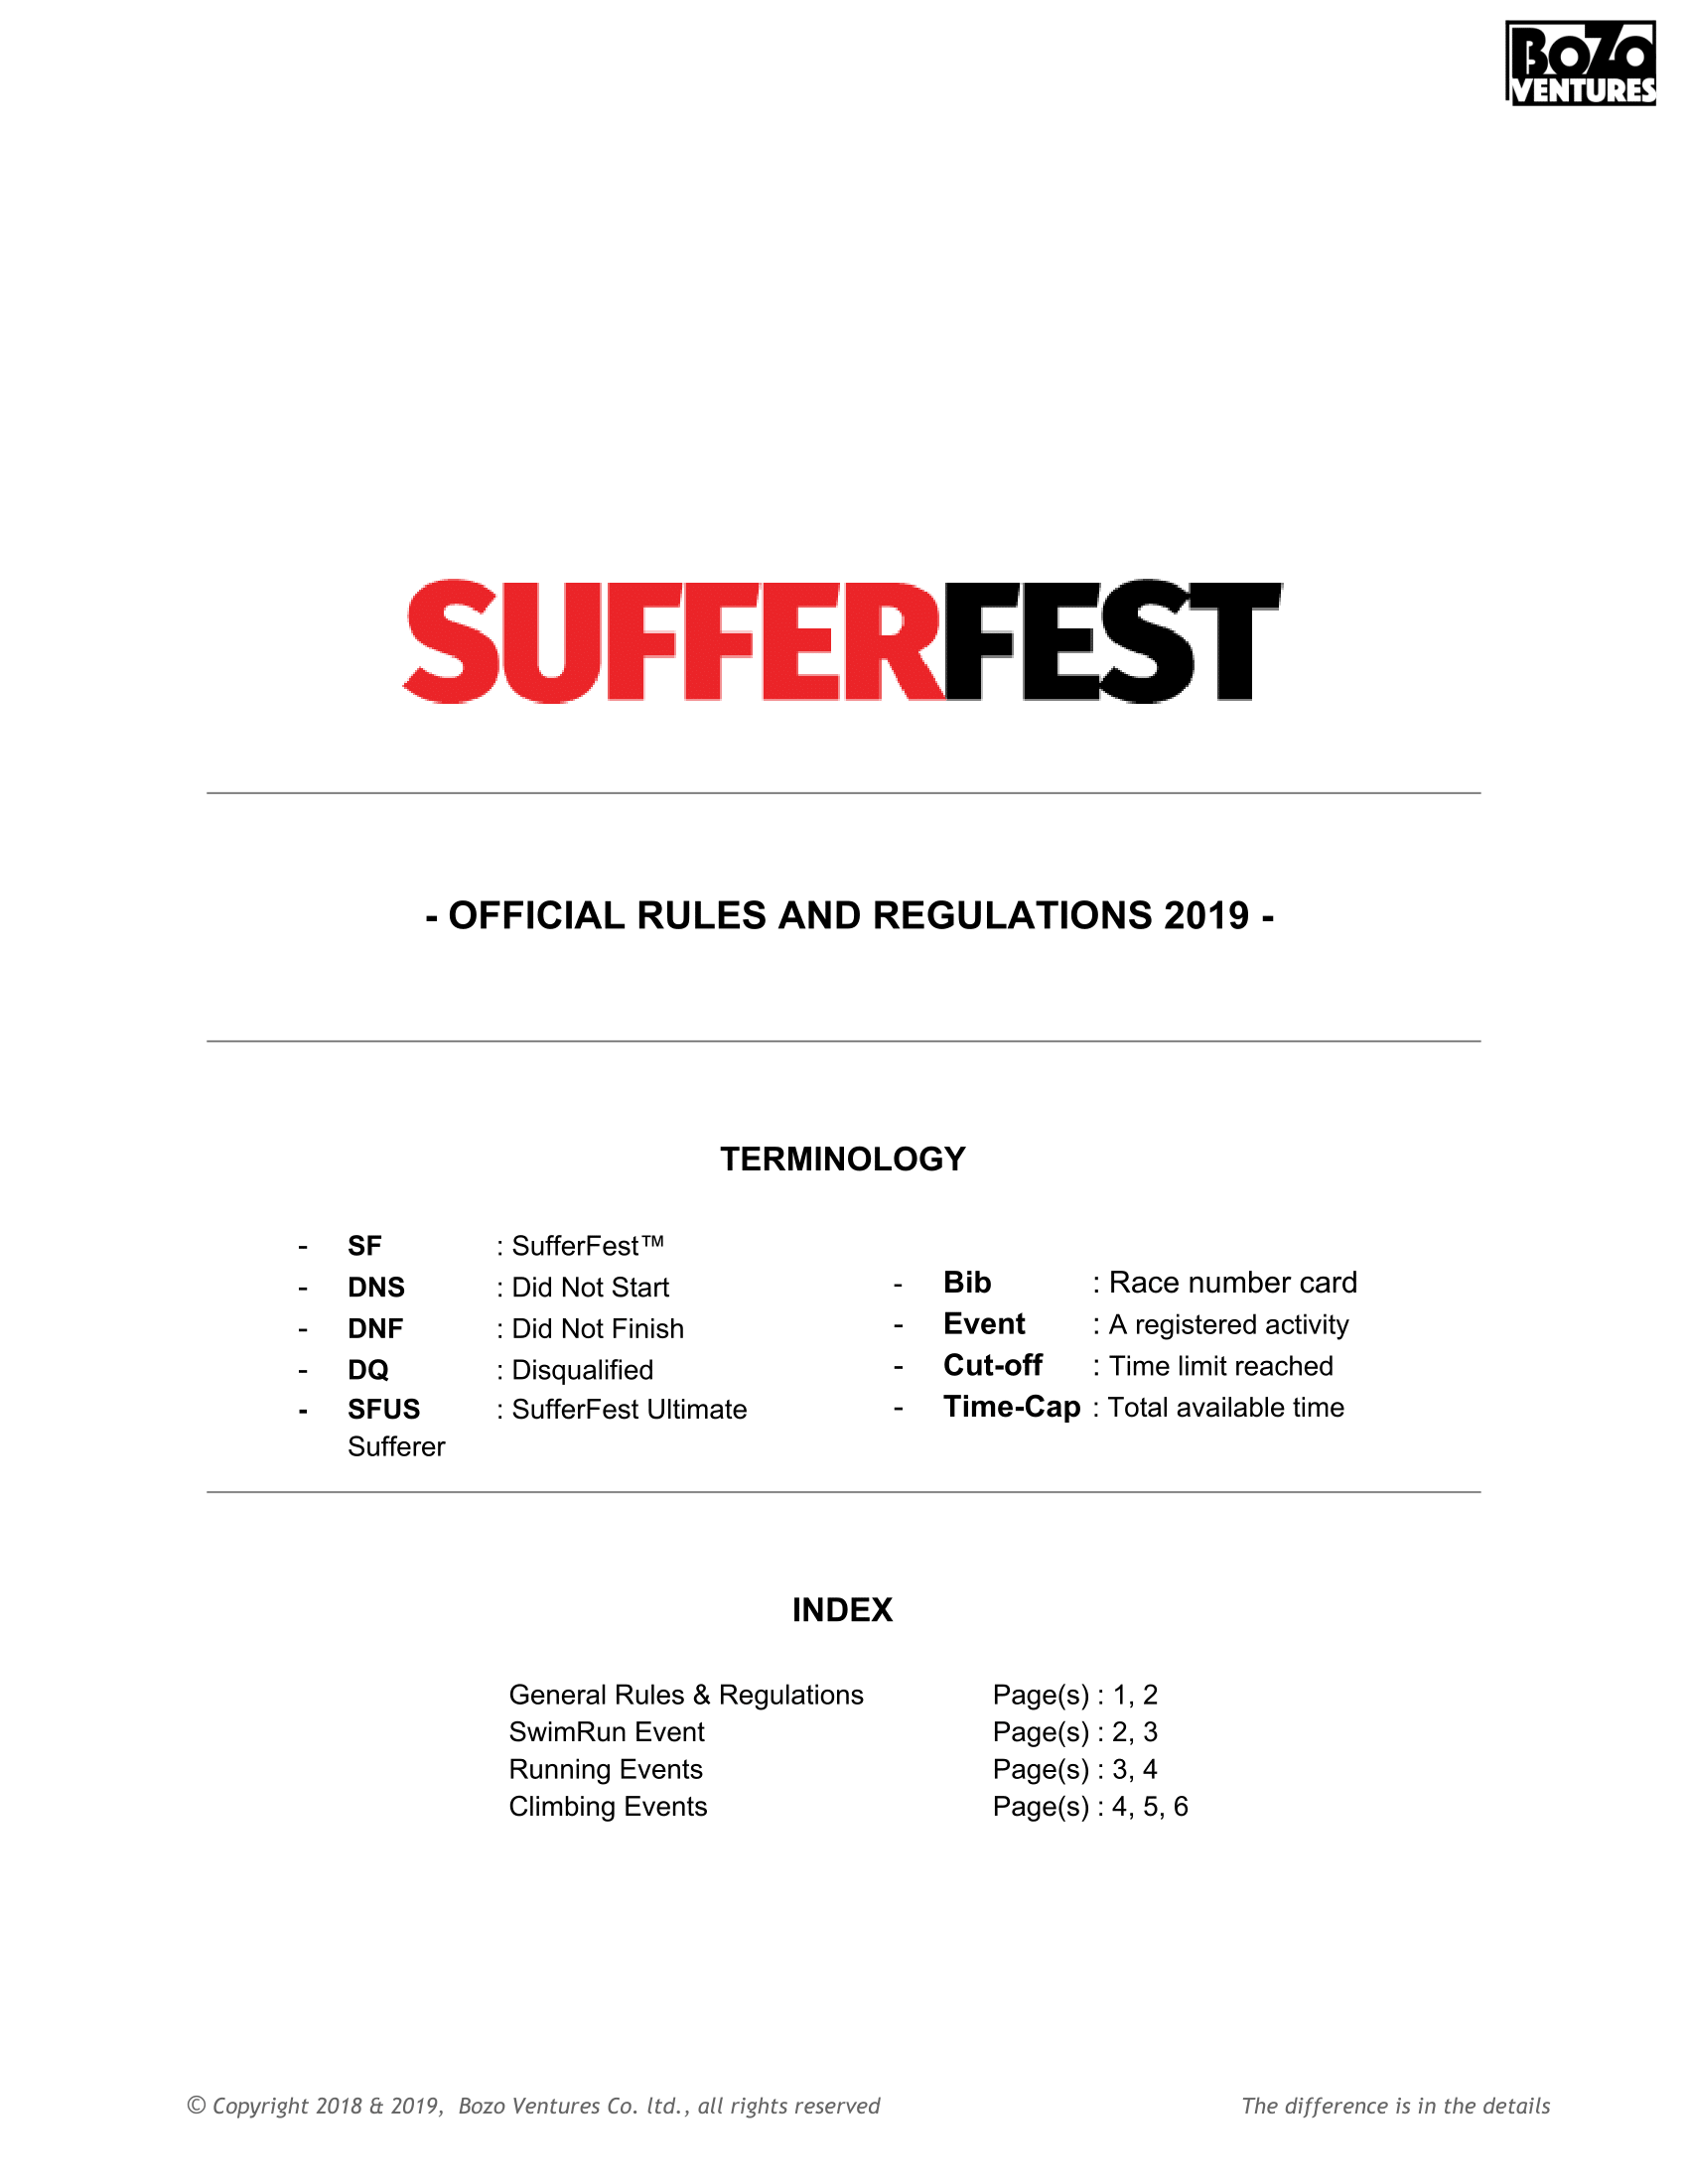 [ENG] SufferFest™ - Official Rules and Regulations - 20181022-1.png